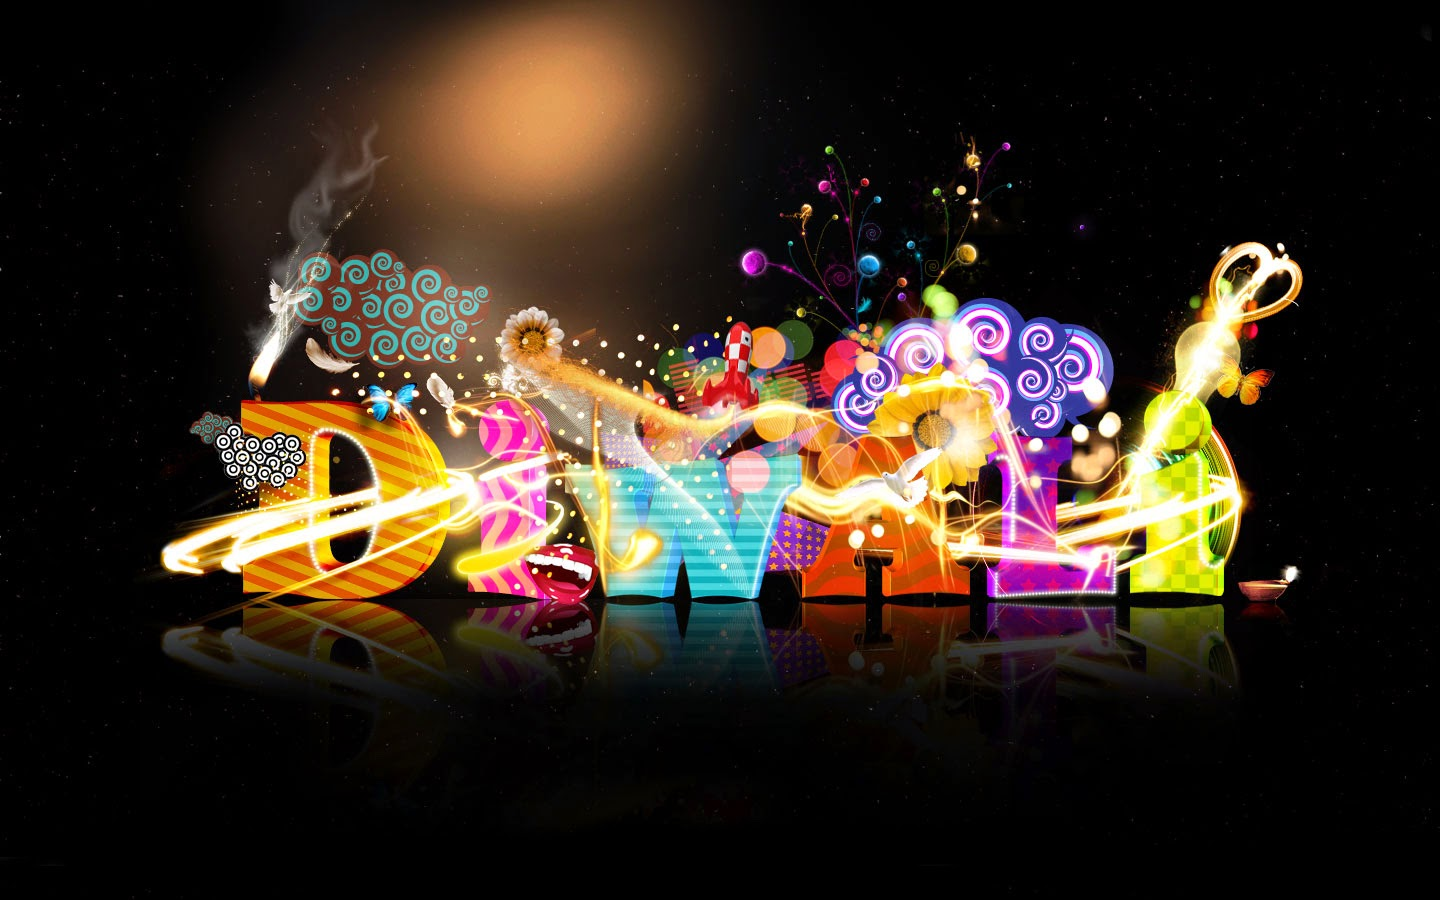 Happy Diwali 2014 Poems In English English Poetry For Kids Happy